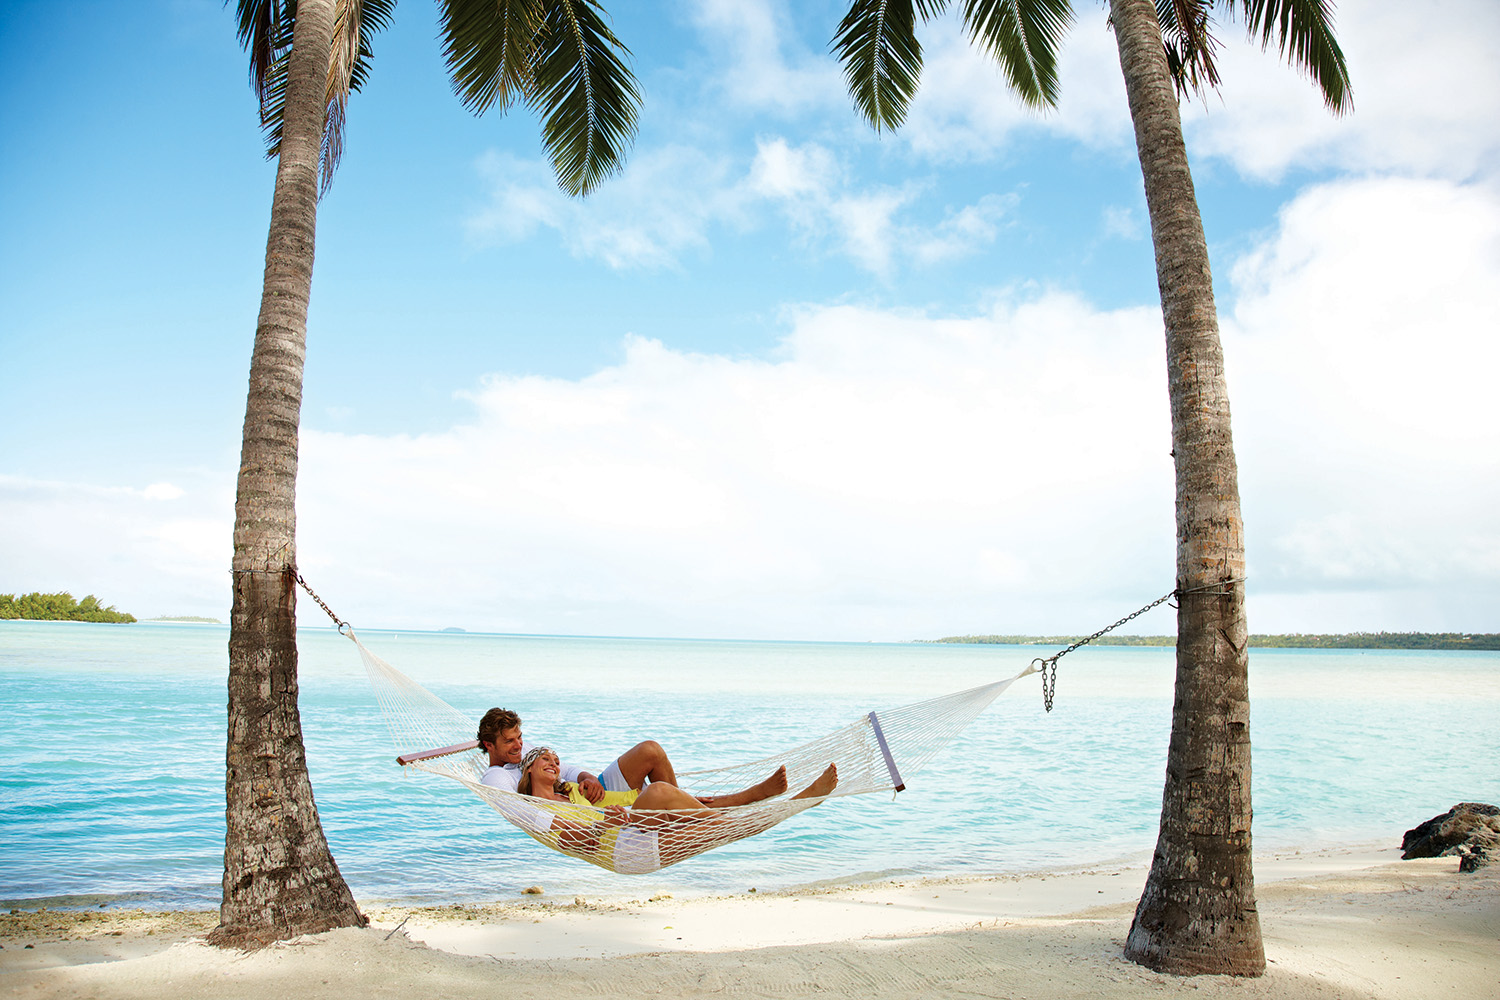 Couple-Relaxing_1500px.jpg